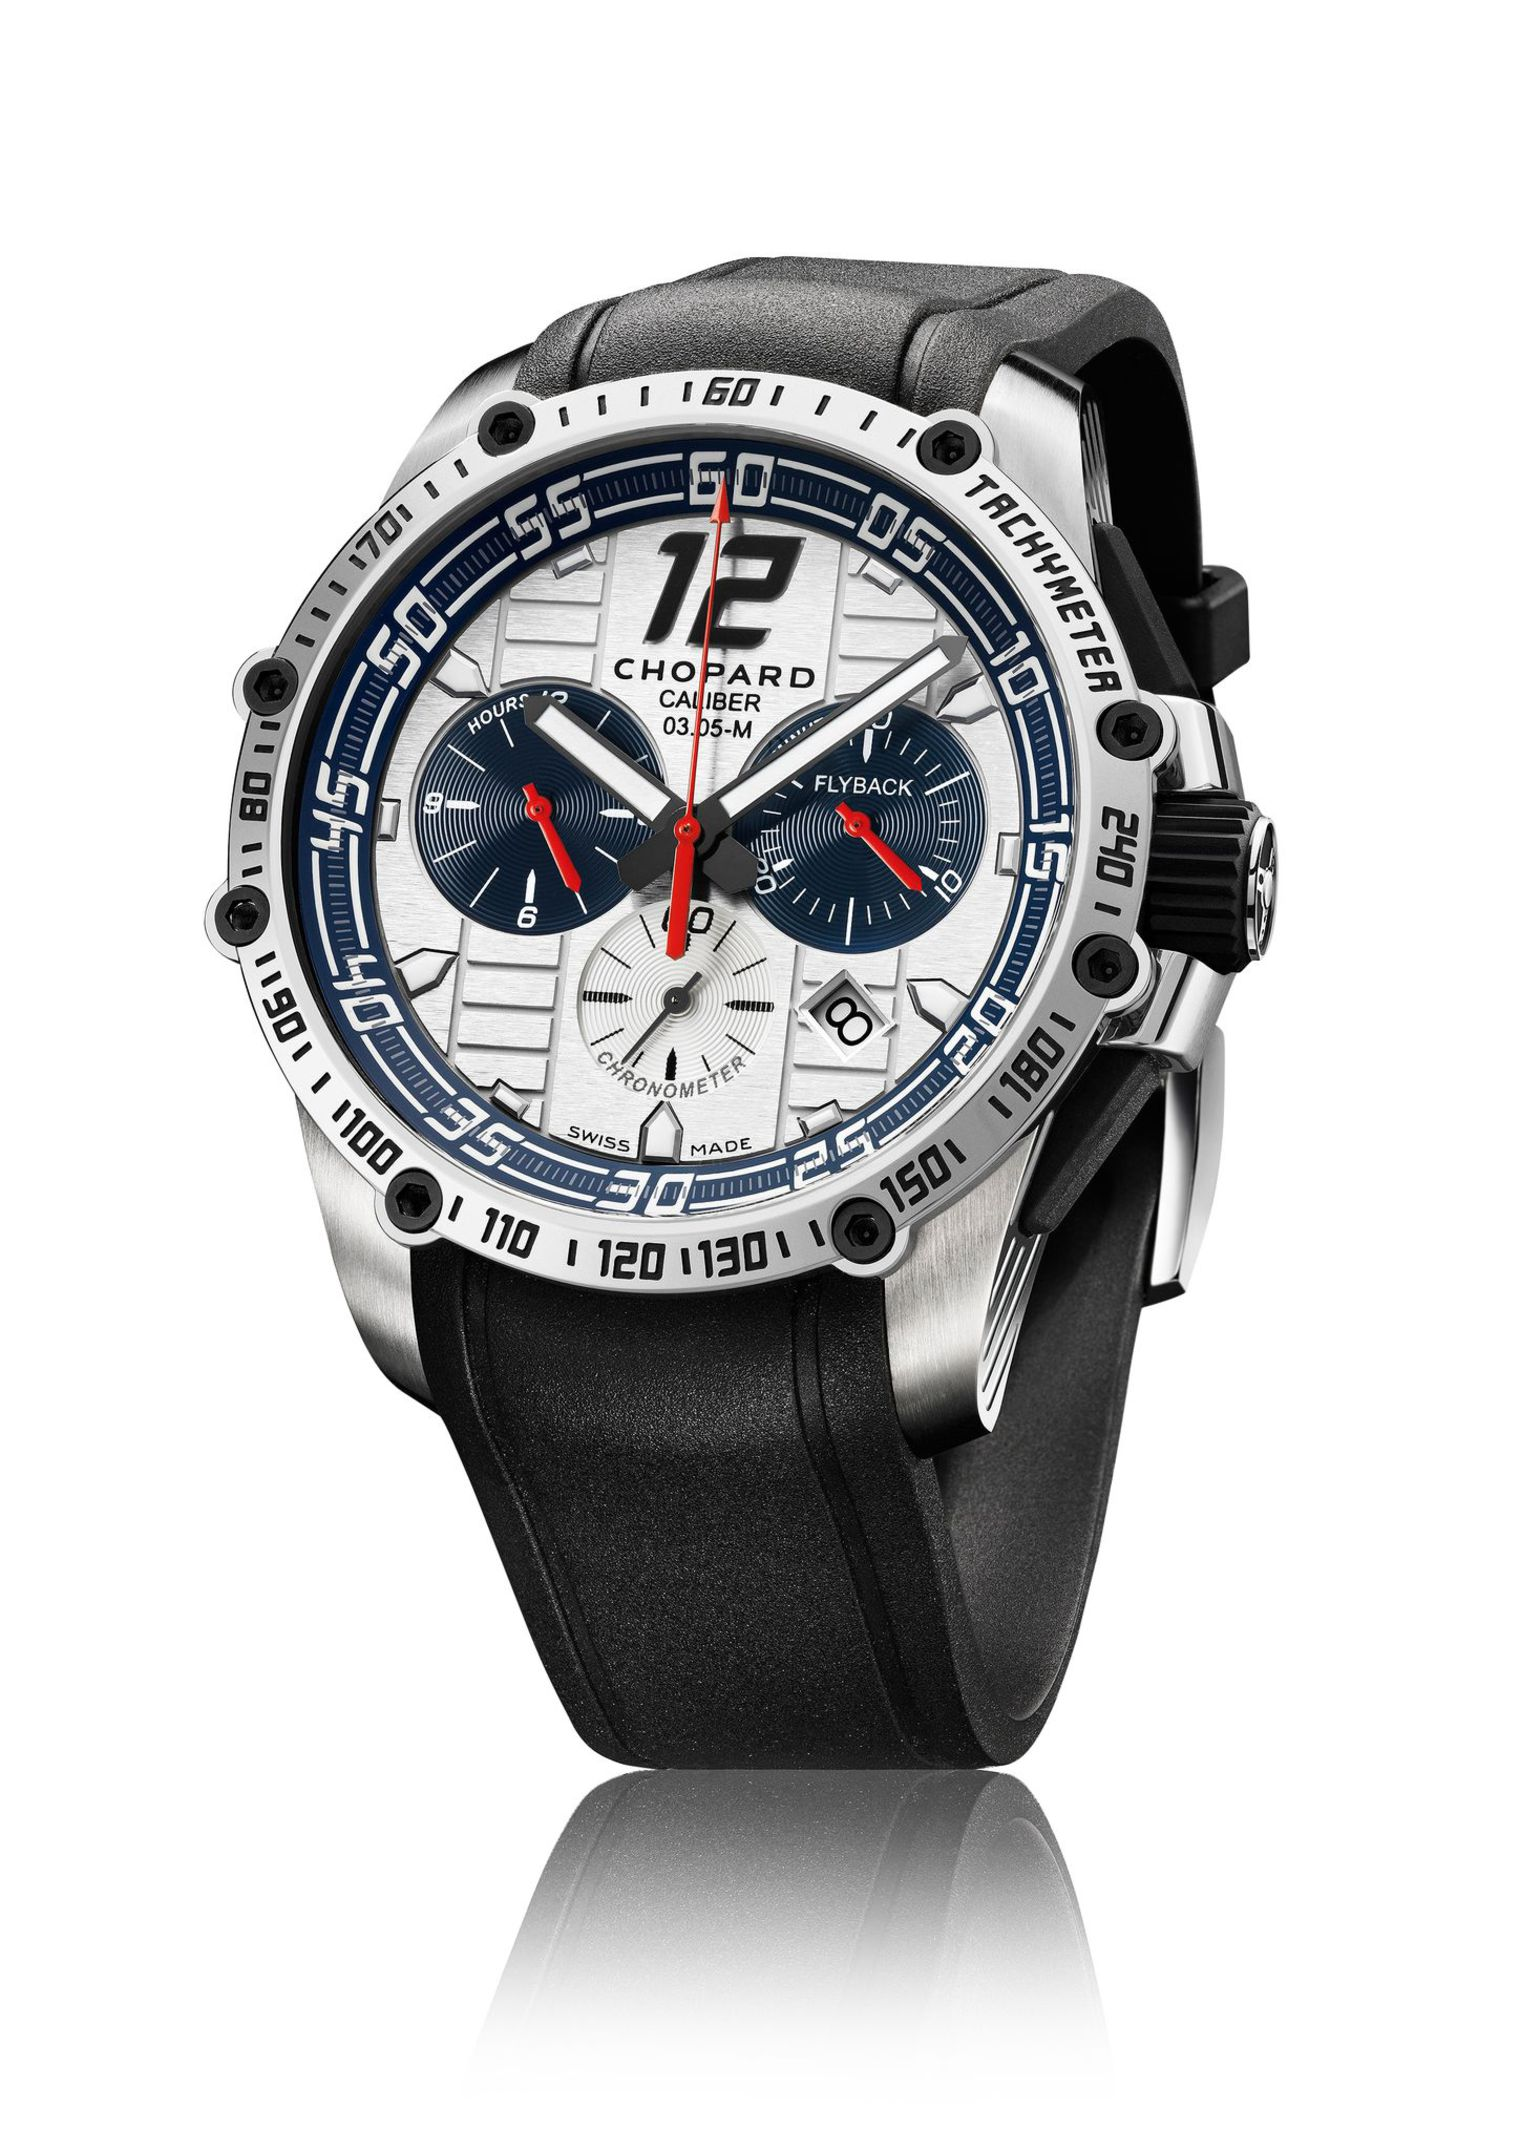 Side of Chopard Superfast Chrono Porsche 919 Jacky Ickx edition